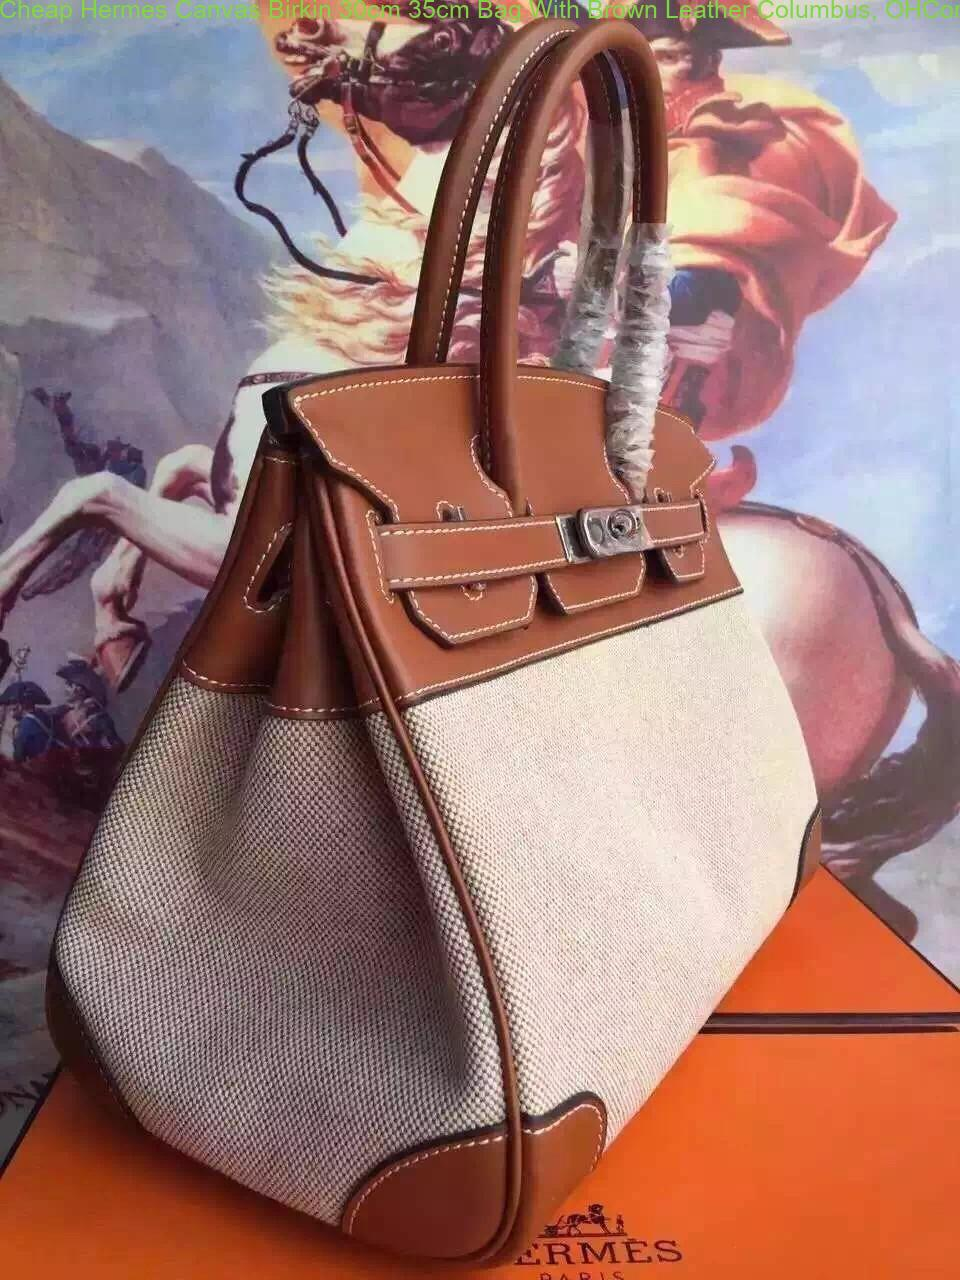 ef1caf3cff Cheap Hermes Canvas Birkin 30cm 35cm Bag With Brown Leather Columbus ...